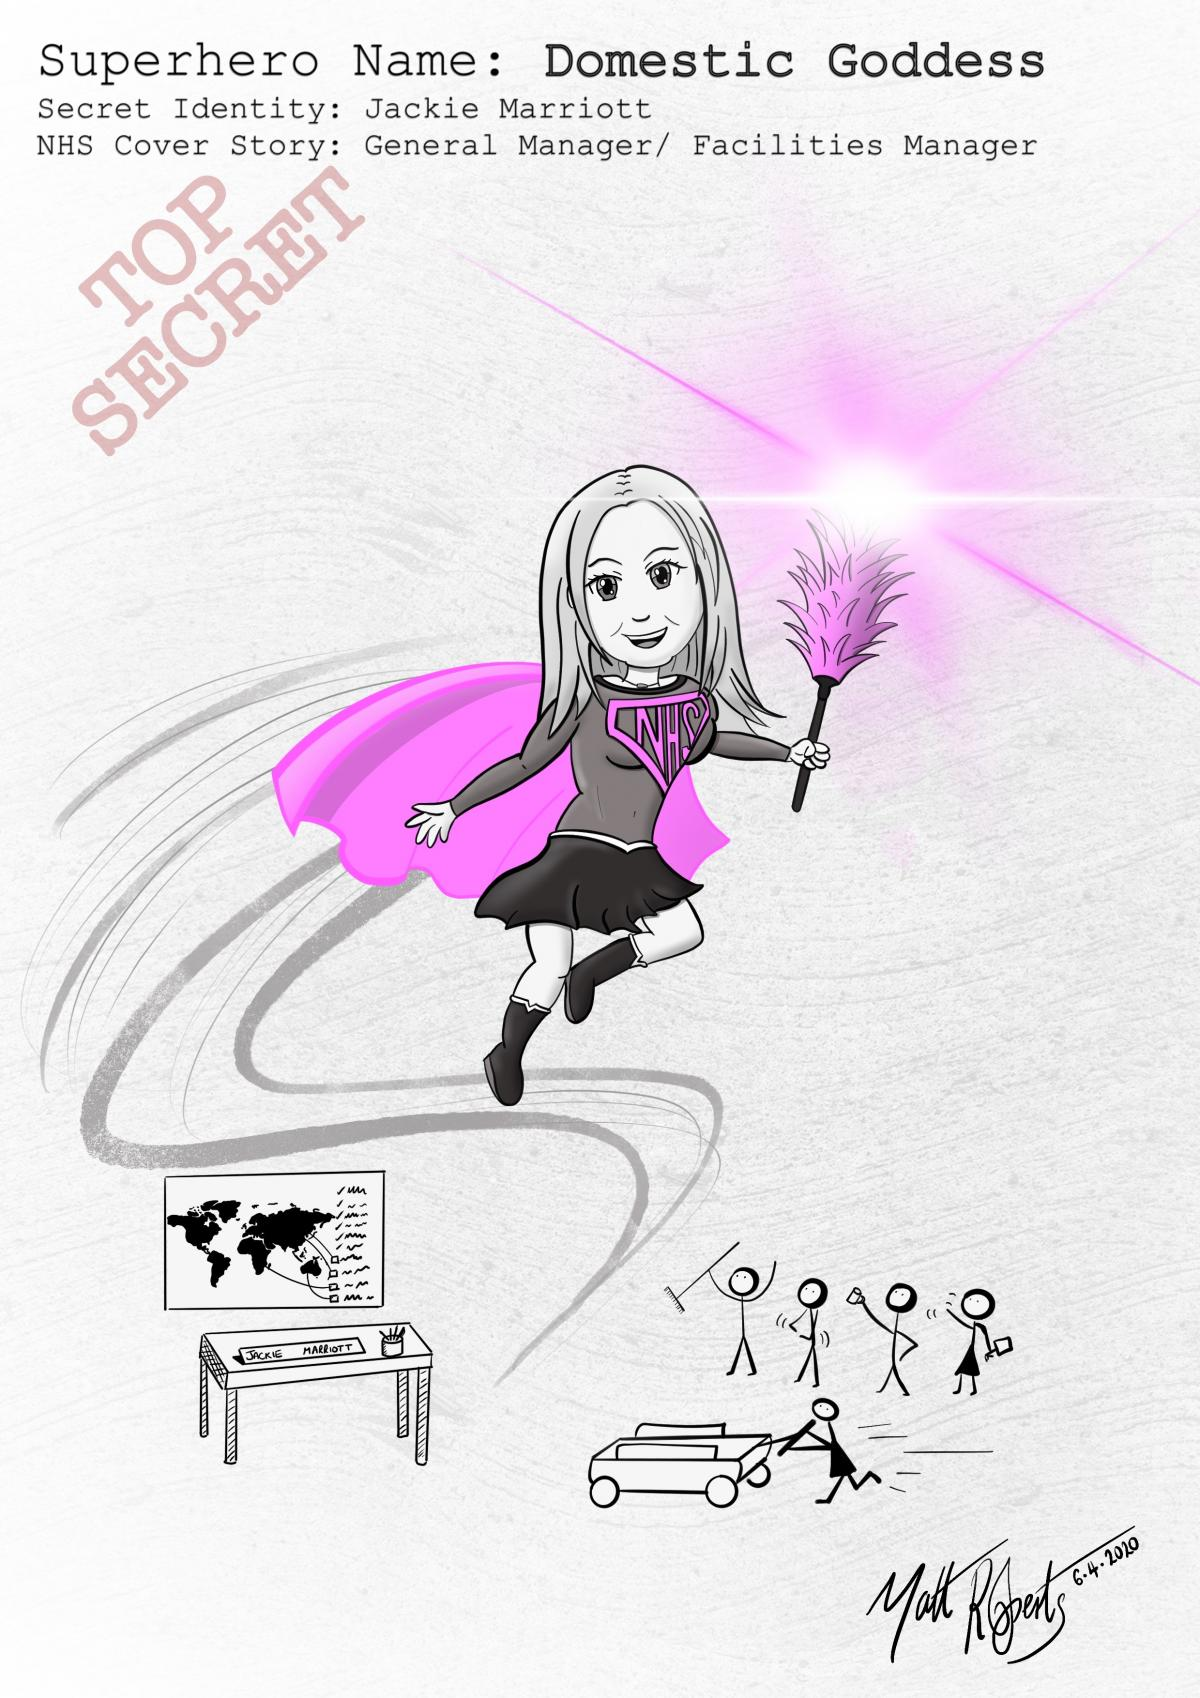 a cartoon of facilities manager Jackie Marriot as the superhero 'domestic goddess'